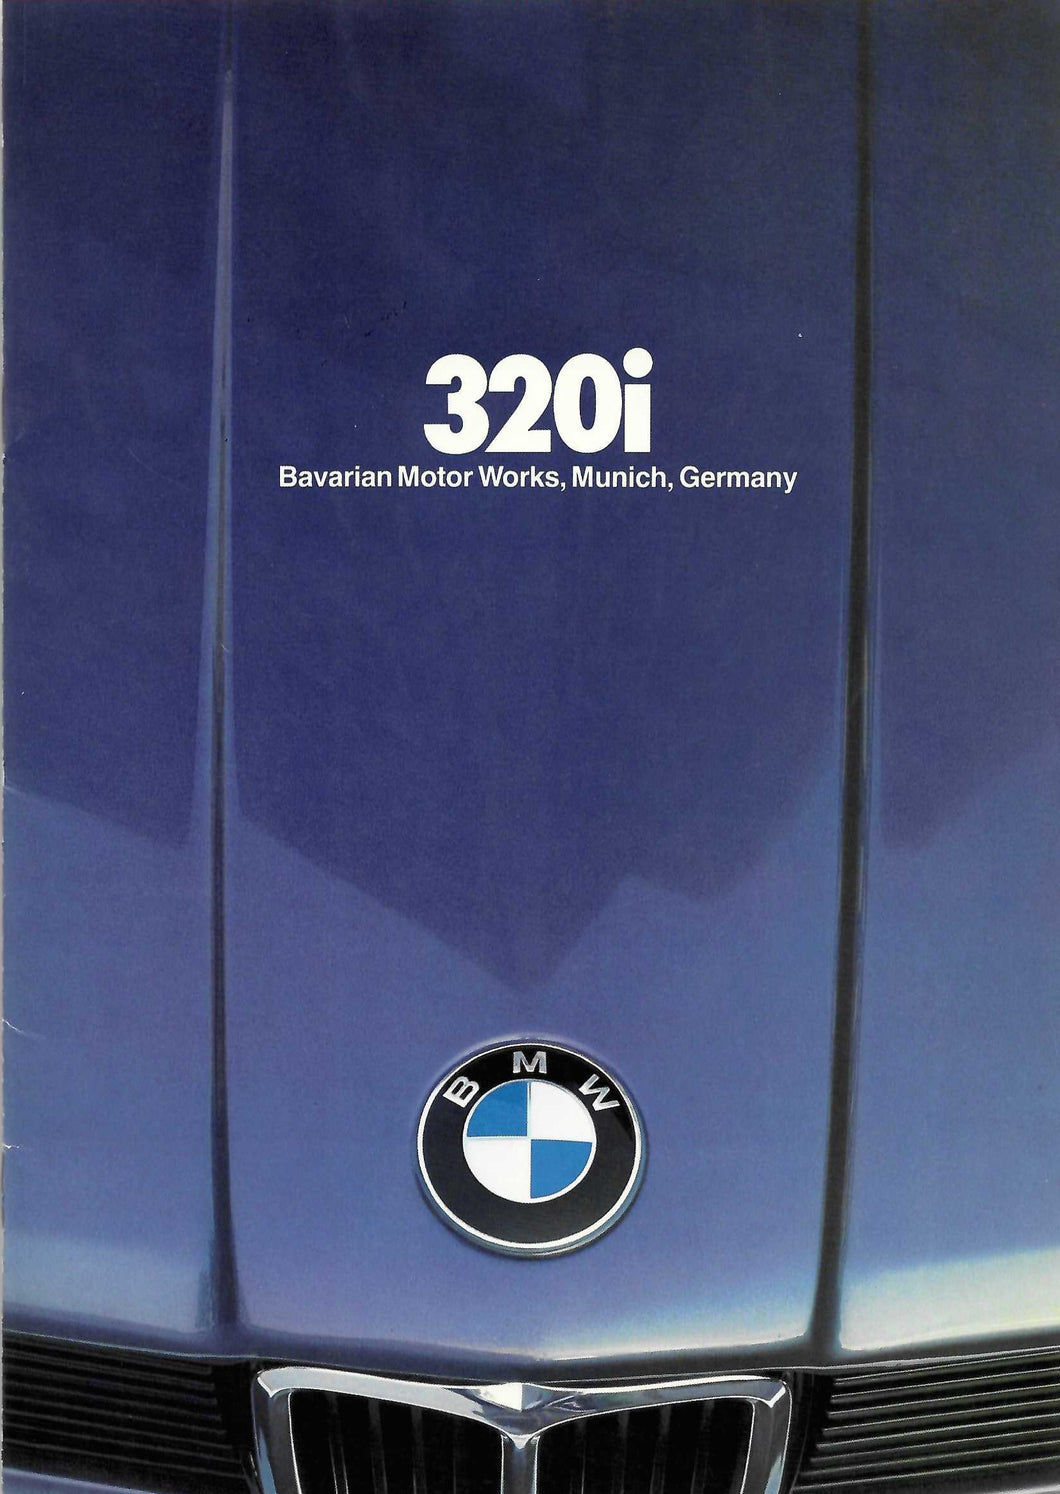 Brochure - 320i Barvarian Motor Works, Munich, Germany (1980) Large